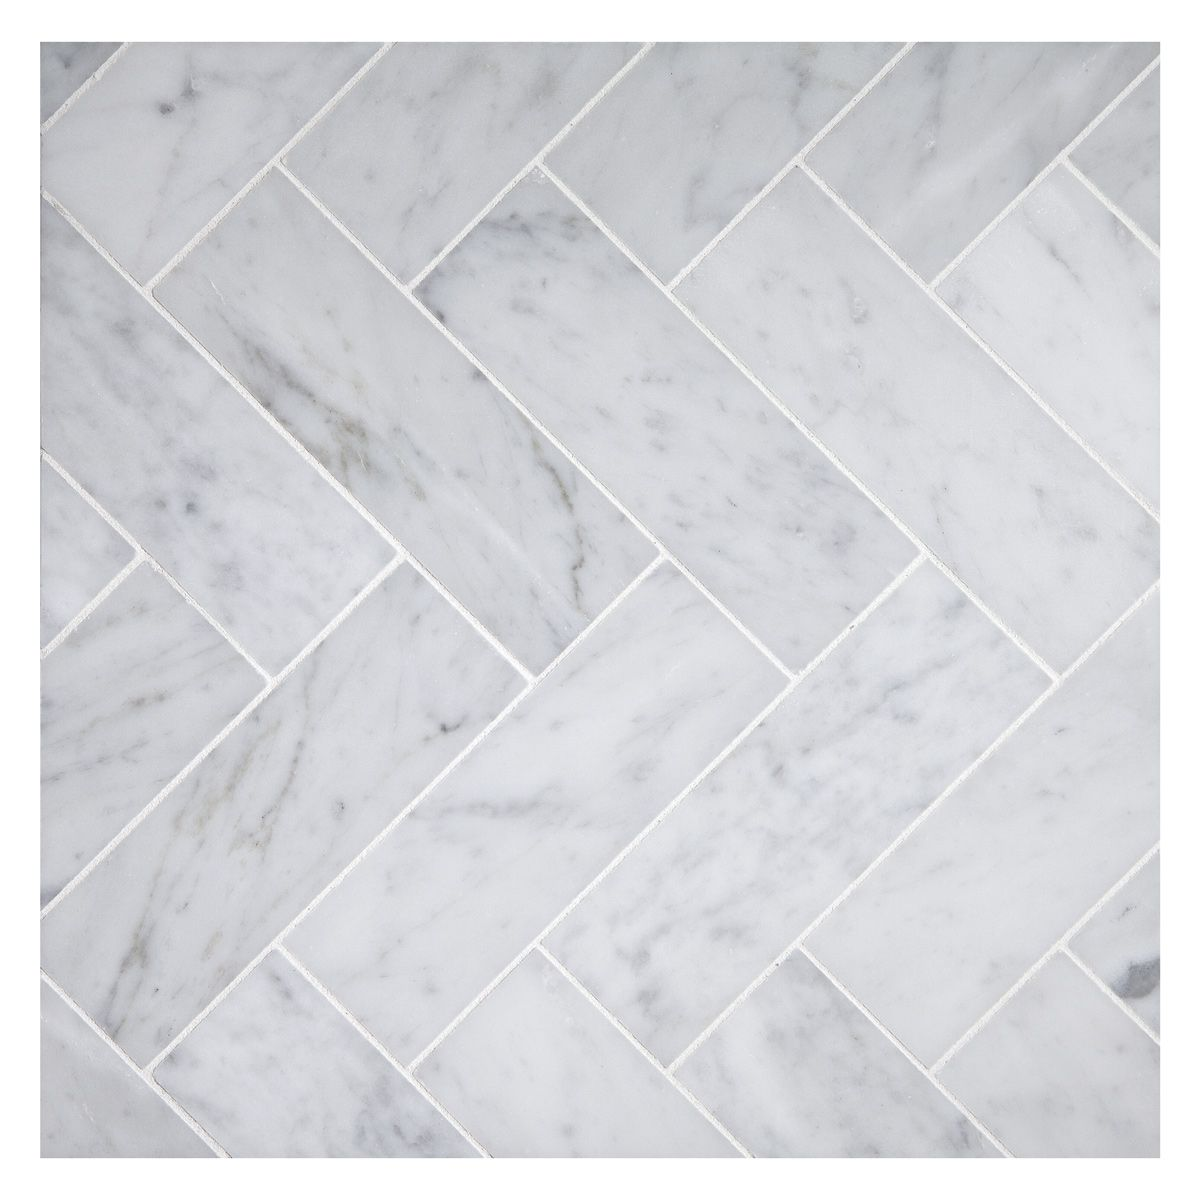 Complete Tile Collection Herringbone 2 X6 Mosaic In Carrara Marble Honed Mi 237 S2 402 Marble Herringbone Tile Herringbone Tile Herringbone Tile Floors